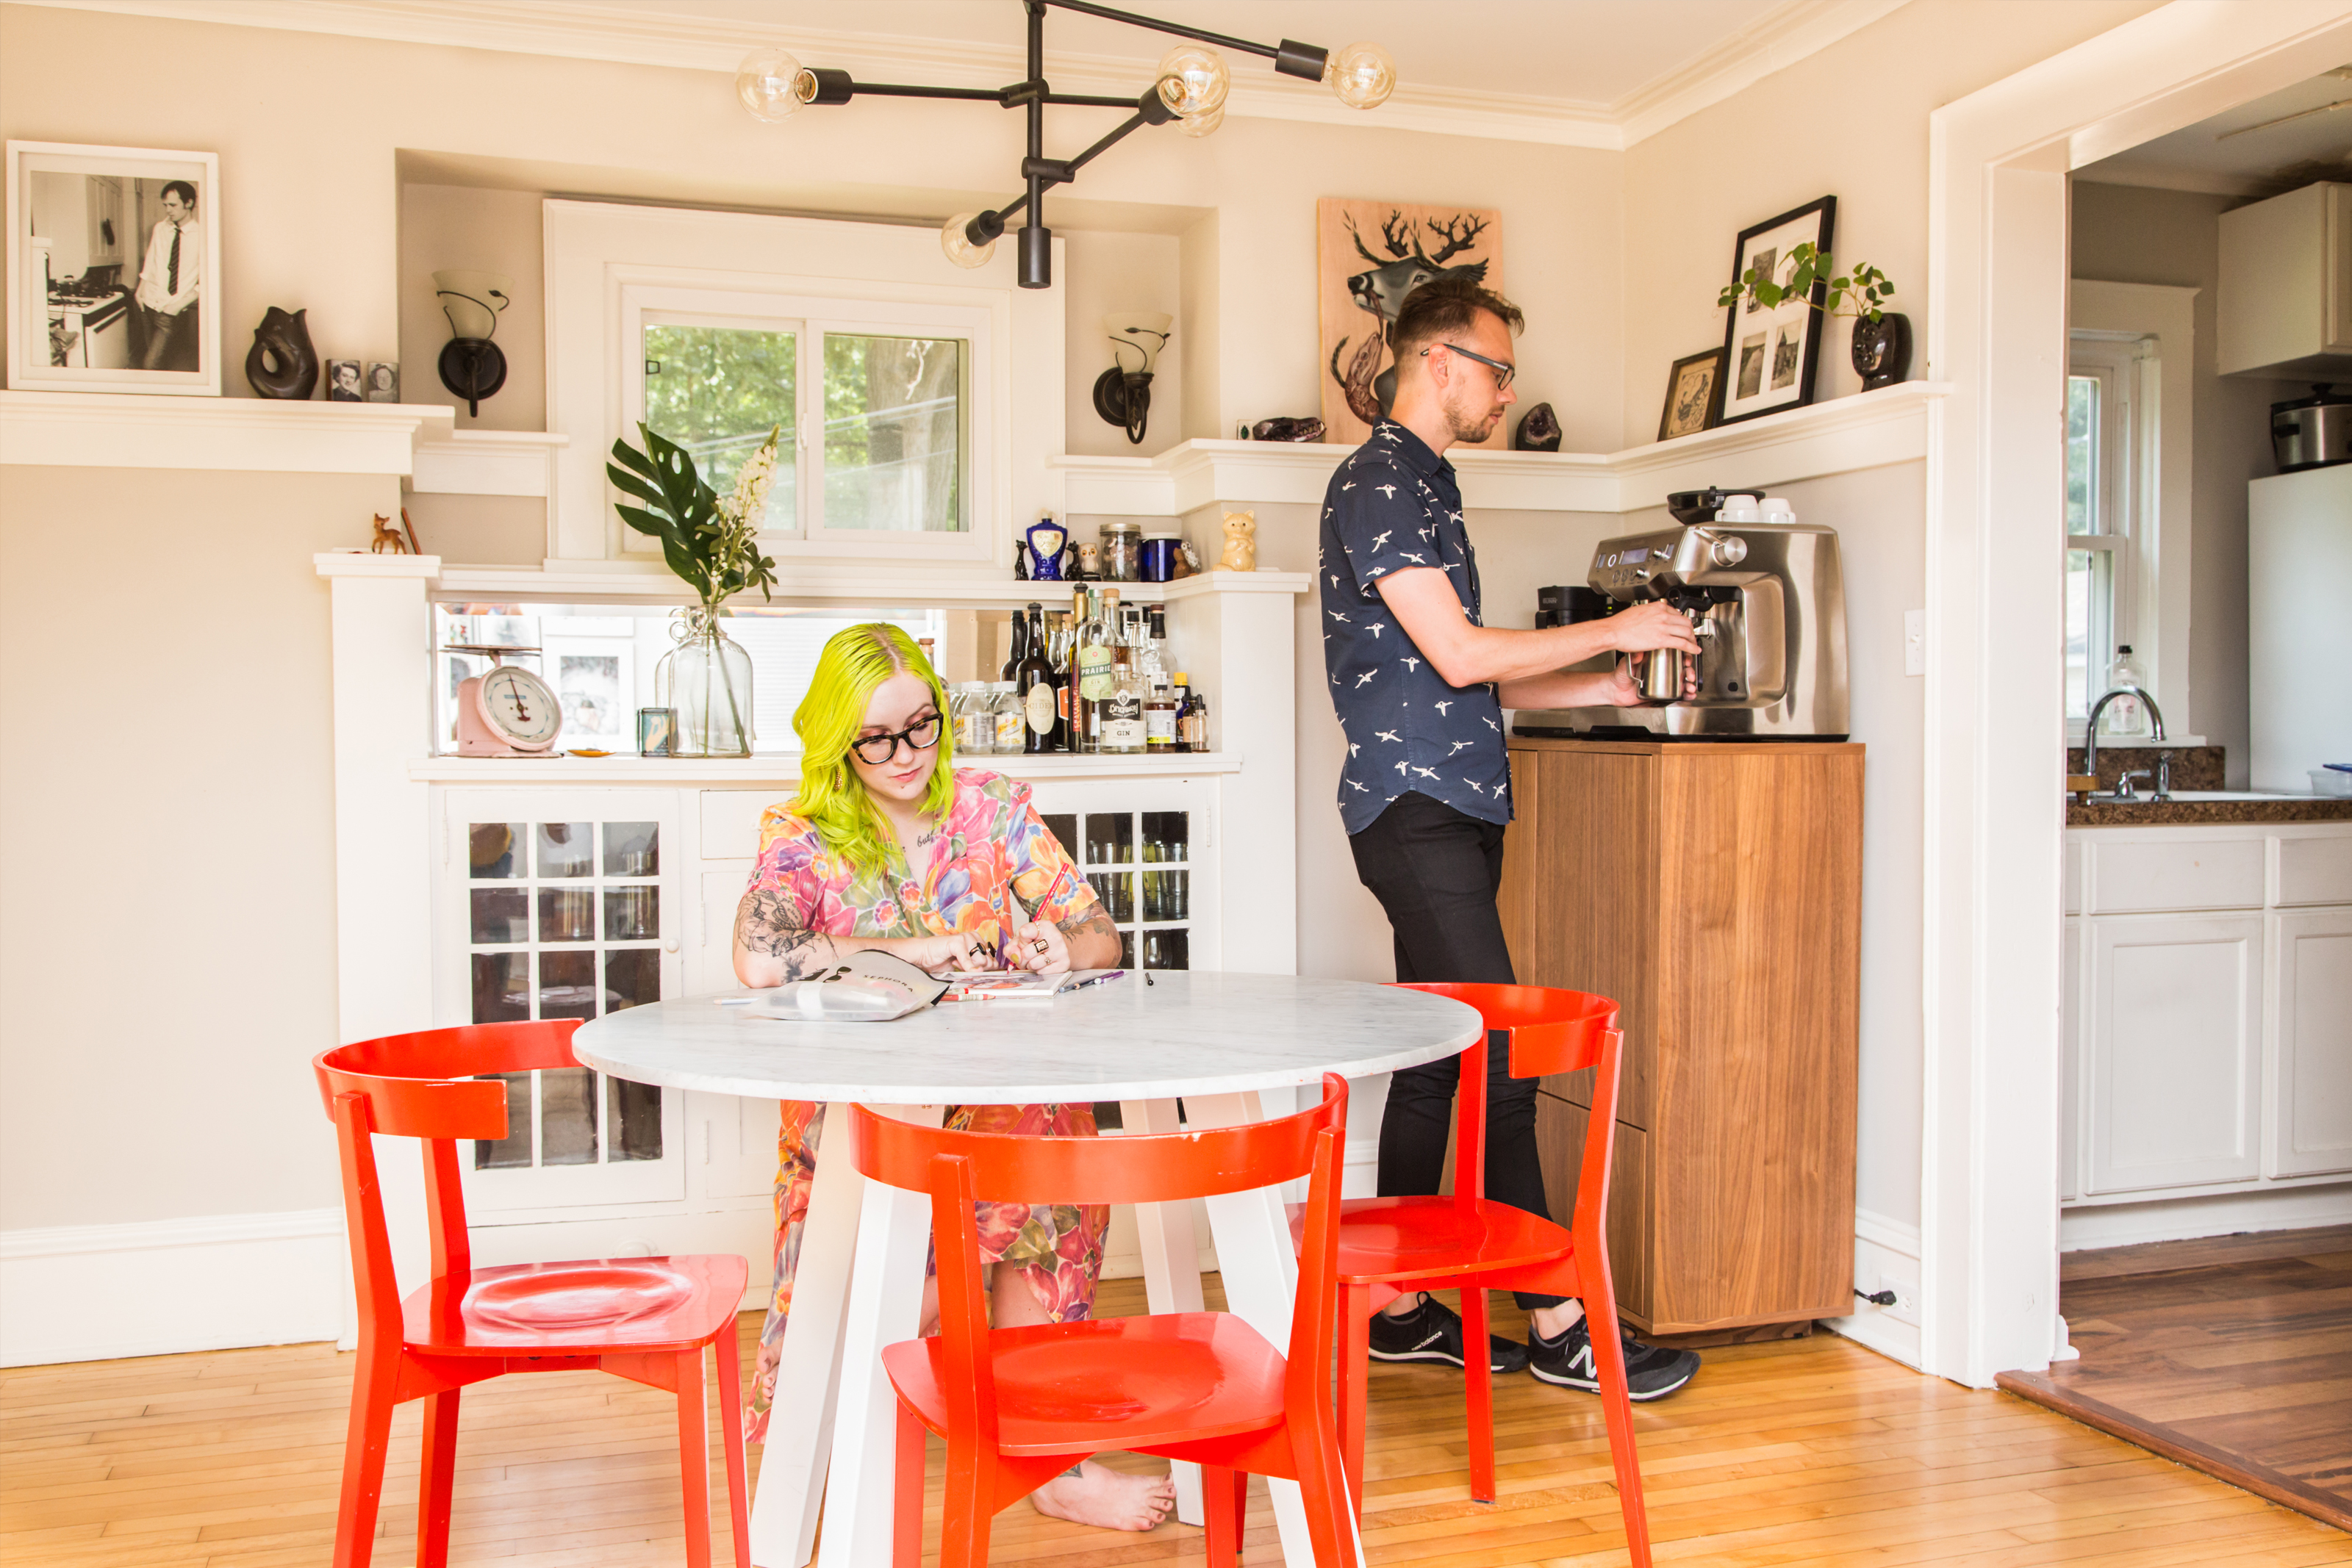 Kaitlin Wadley and Bryce Bordenkecher in their dining room